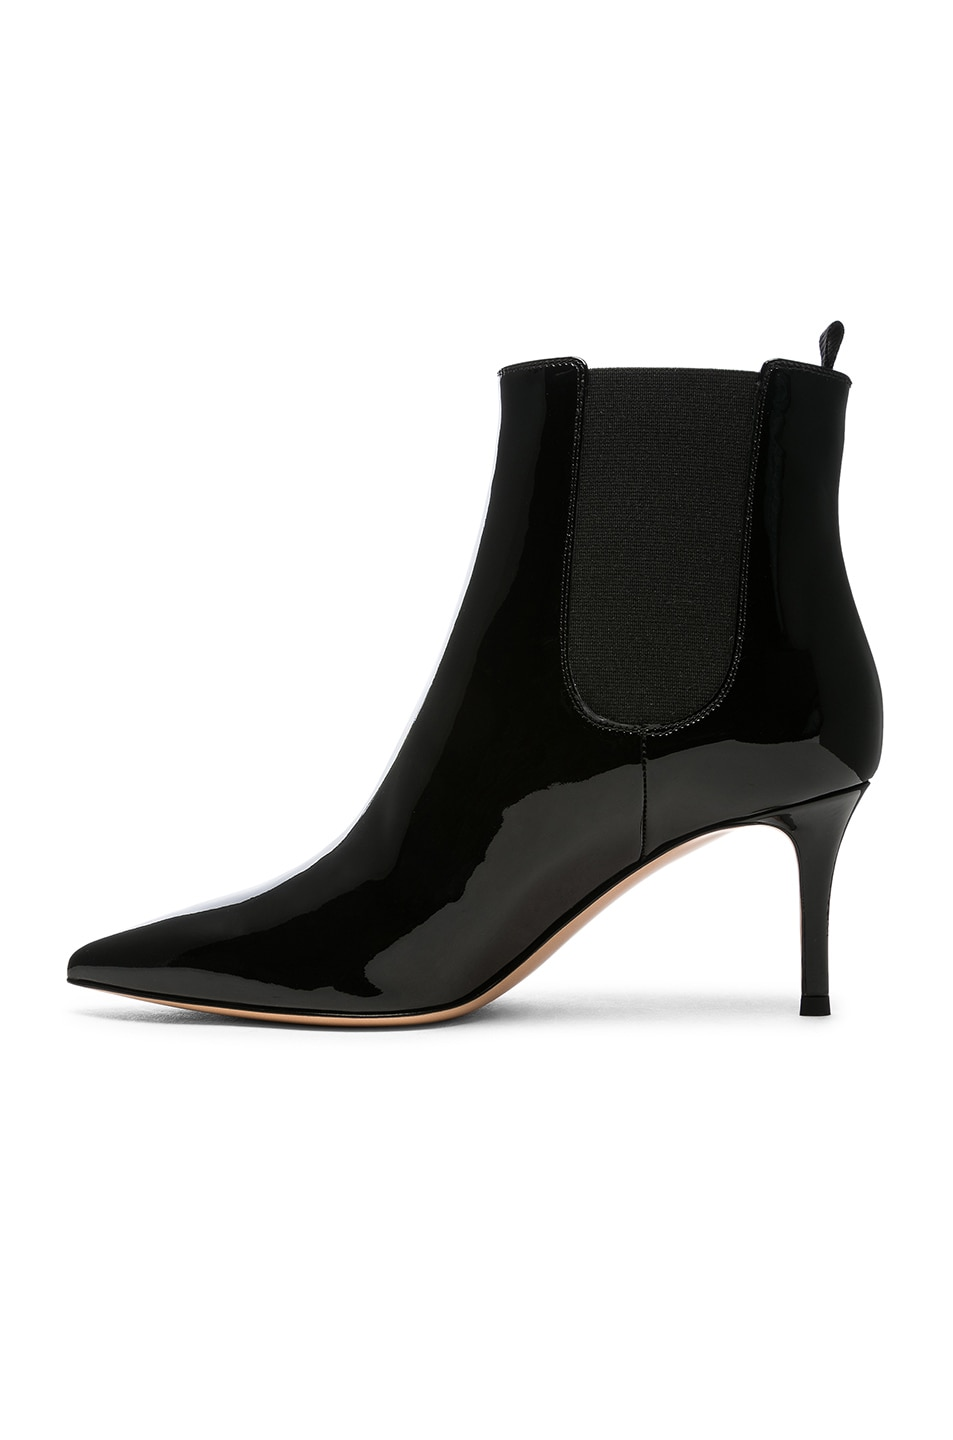 Image 5 of Gianvito Rossi Patent Leather Evan Stiletto Ankle Boots in Black